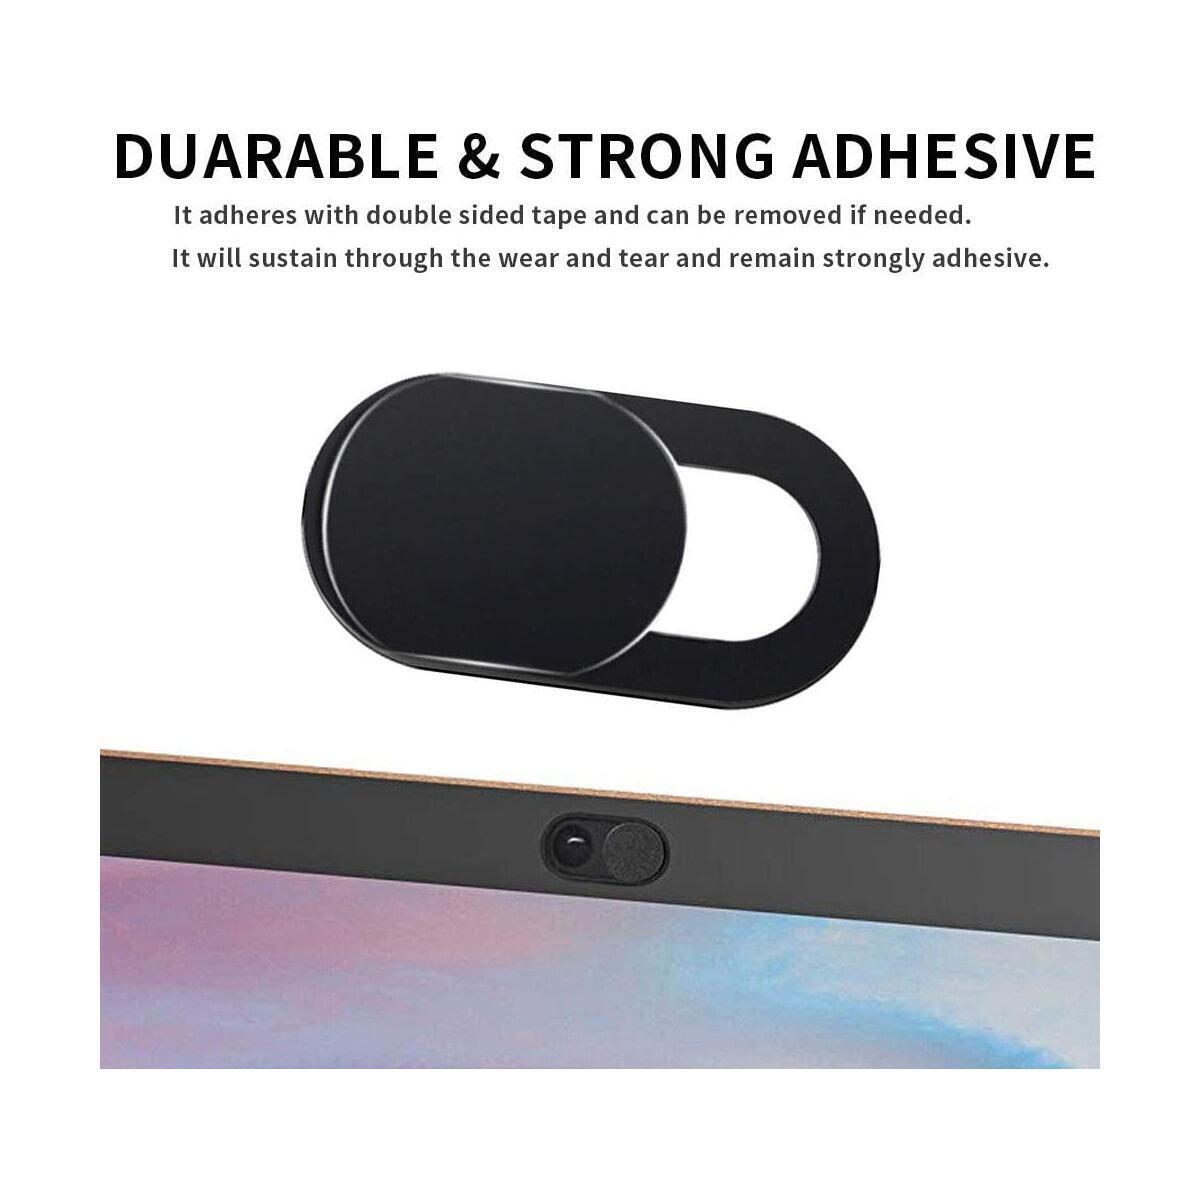 Laptop Webcam Cover Slider 12 Pack, Ultra Thin Laptop Camera Cover Slide for MacBook, iPhone, Computer, Laptop, Dell, PC,